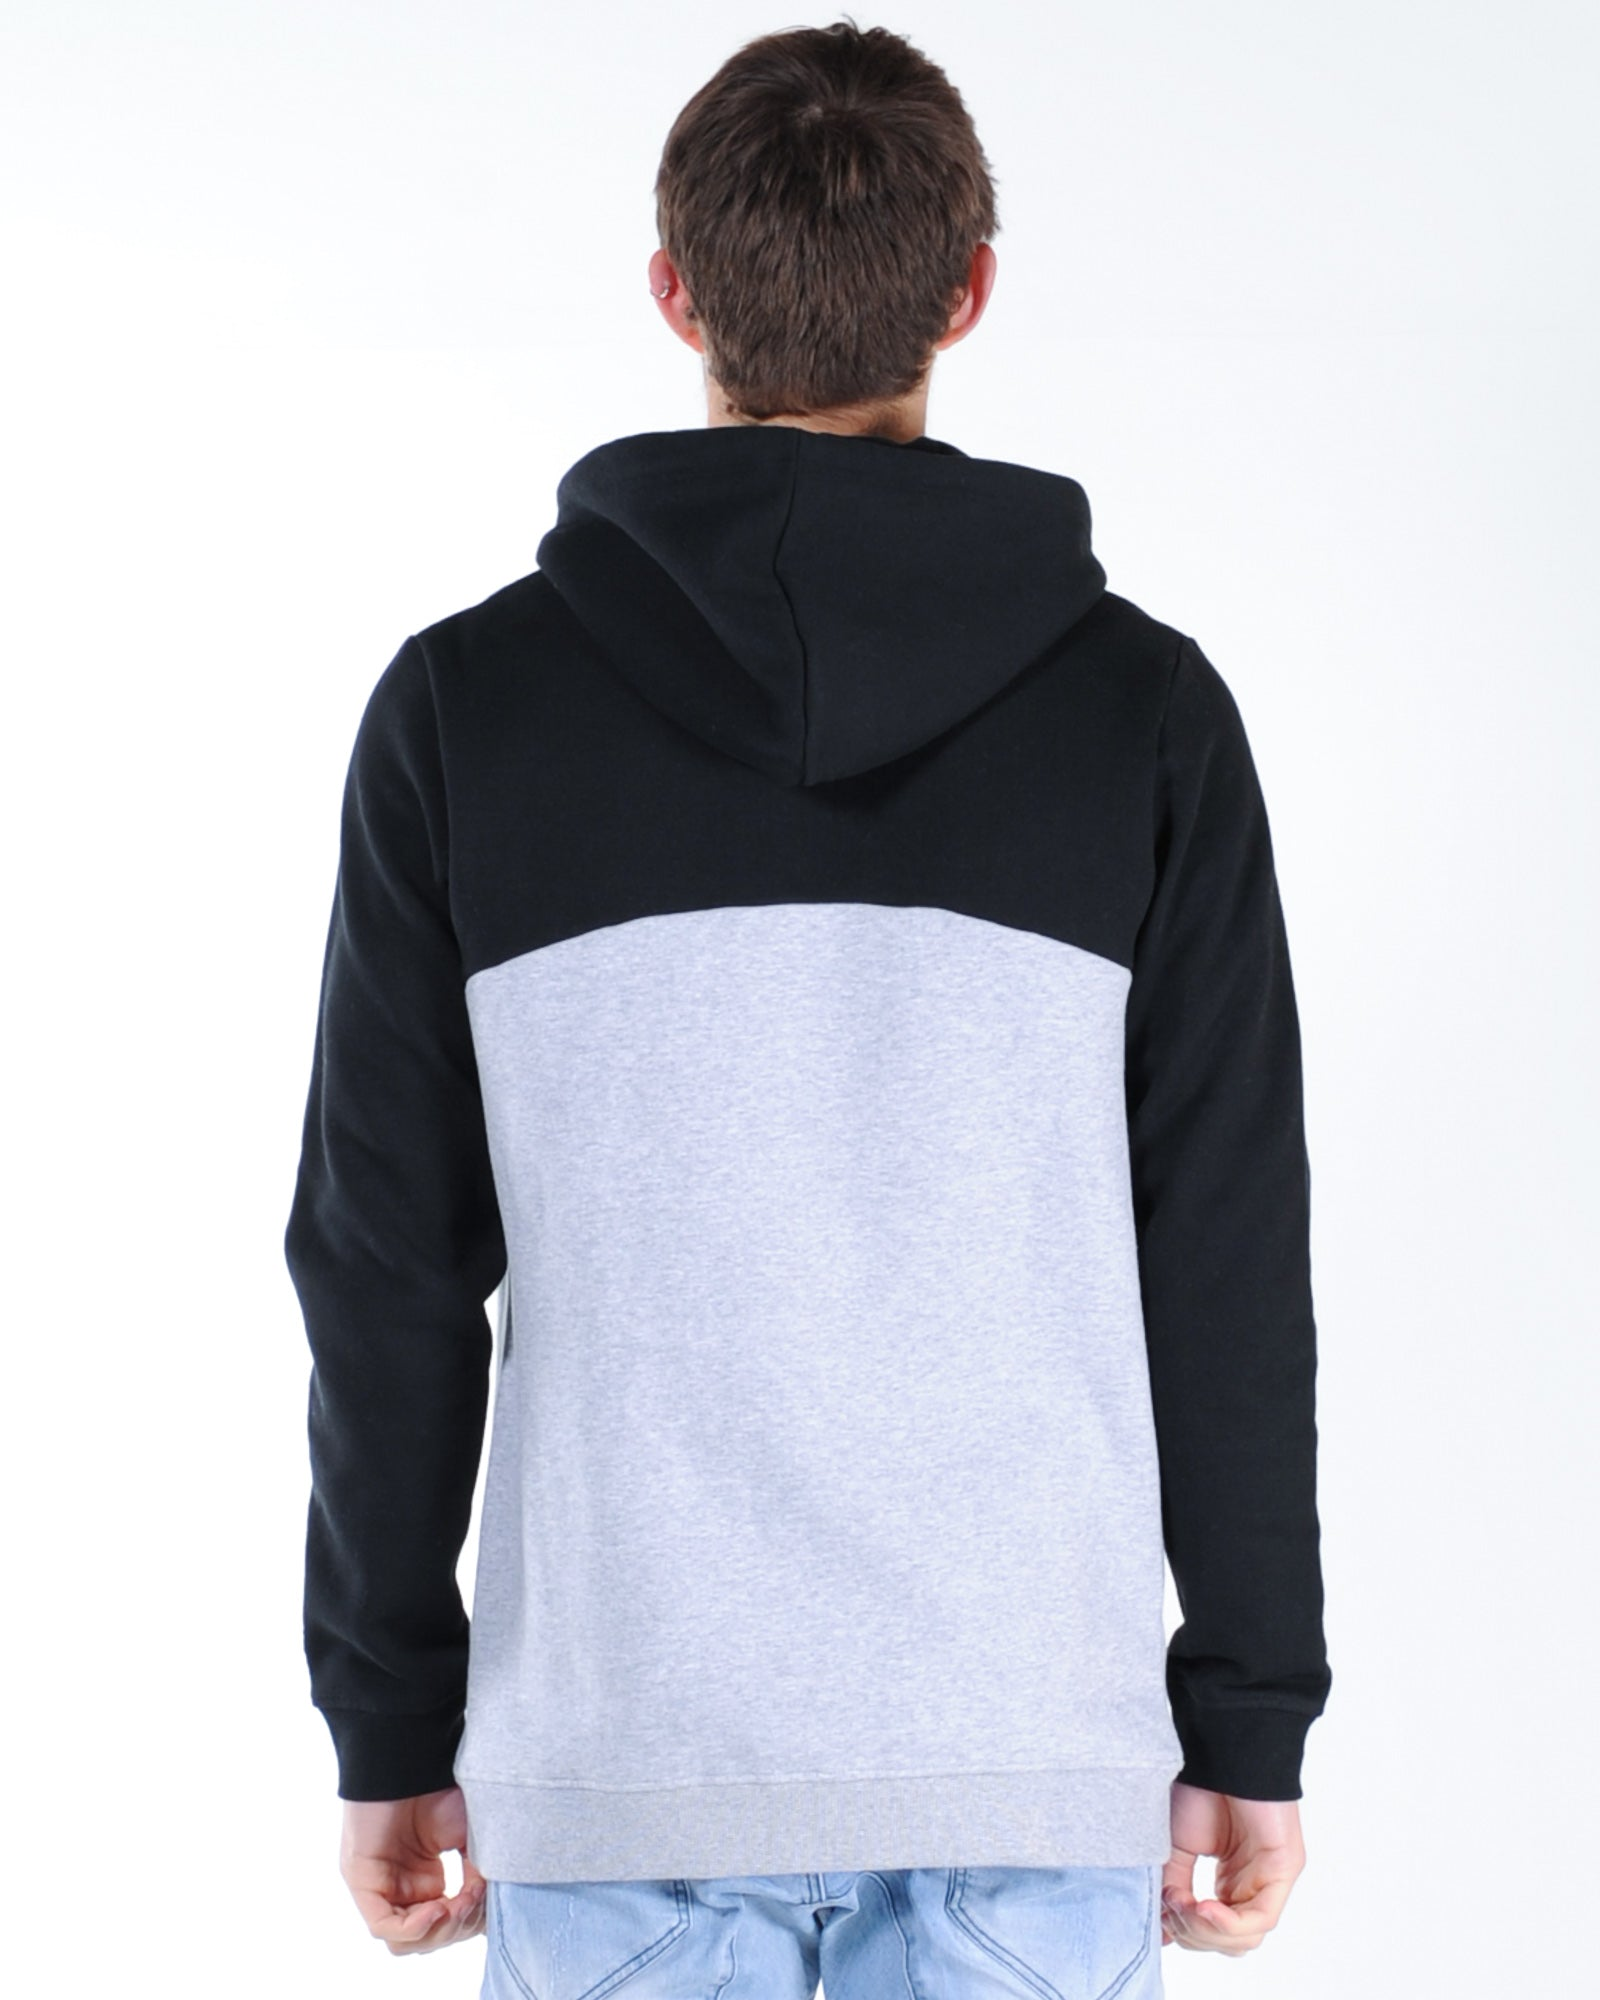 St. Goliath All-Pro Hood Sweat - Black/Grey